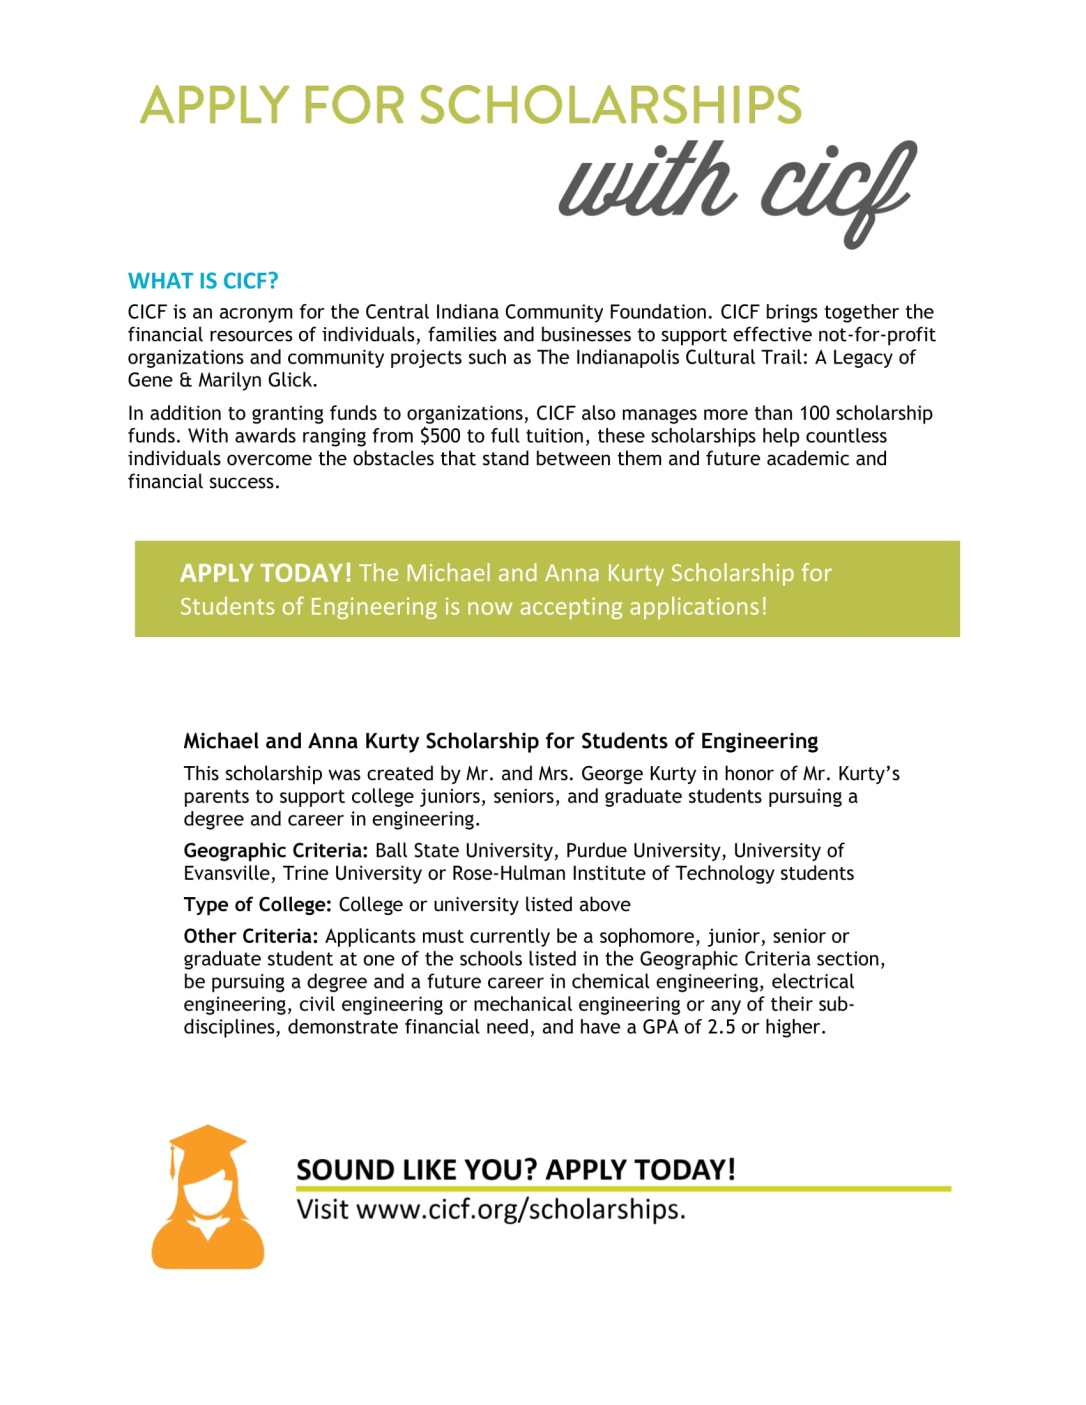 CICF Kurty Engineering Scholarship Flyer-1